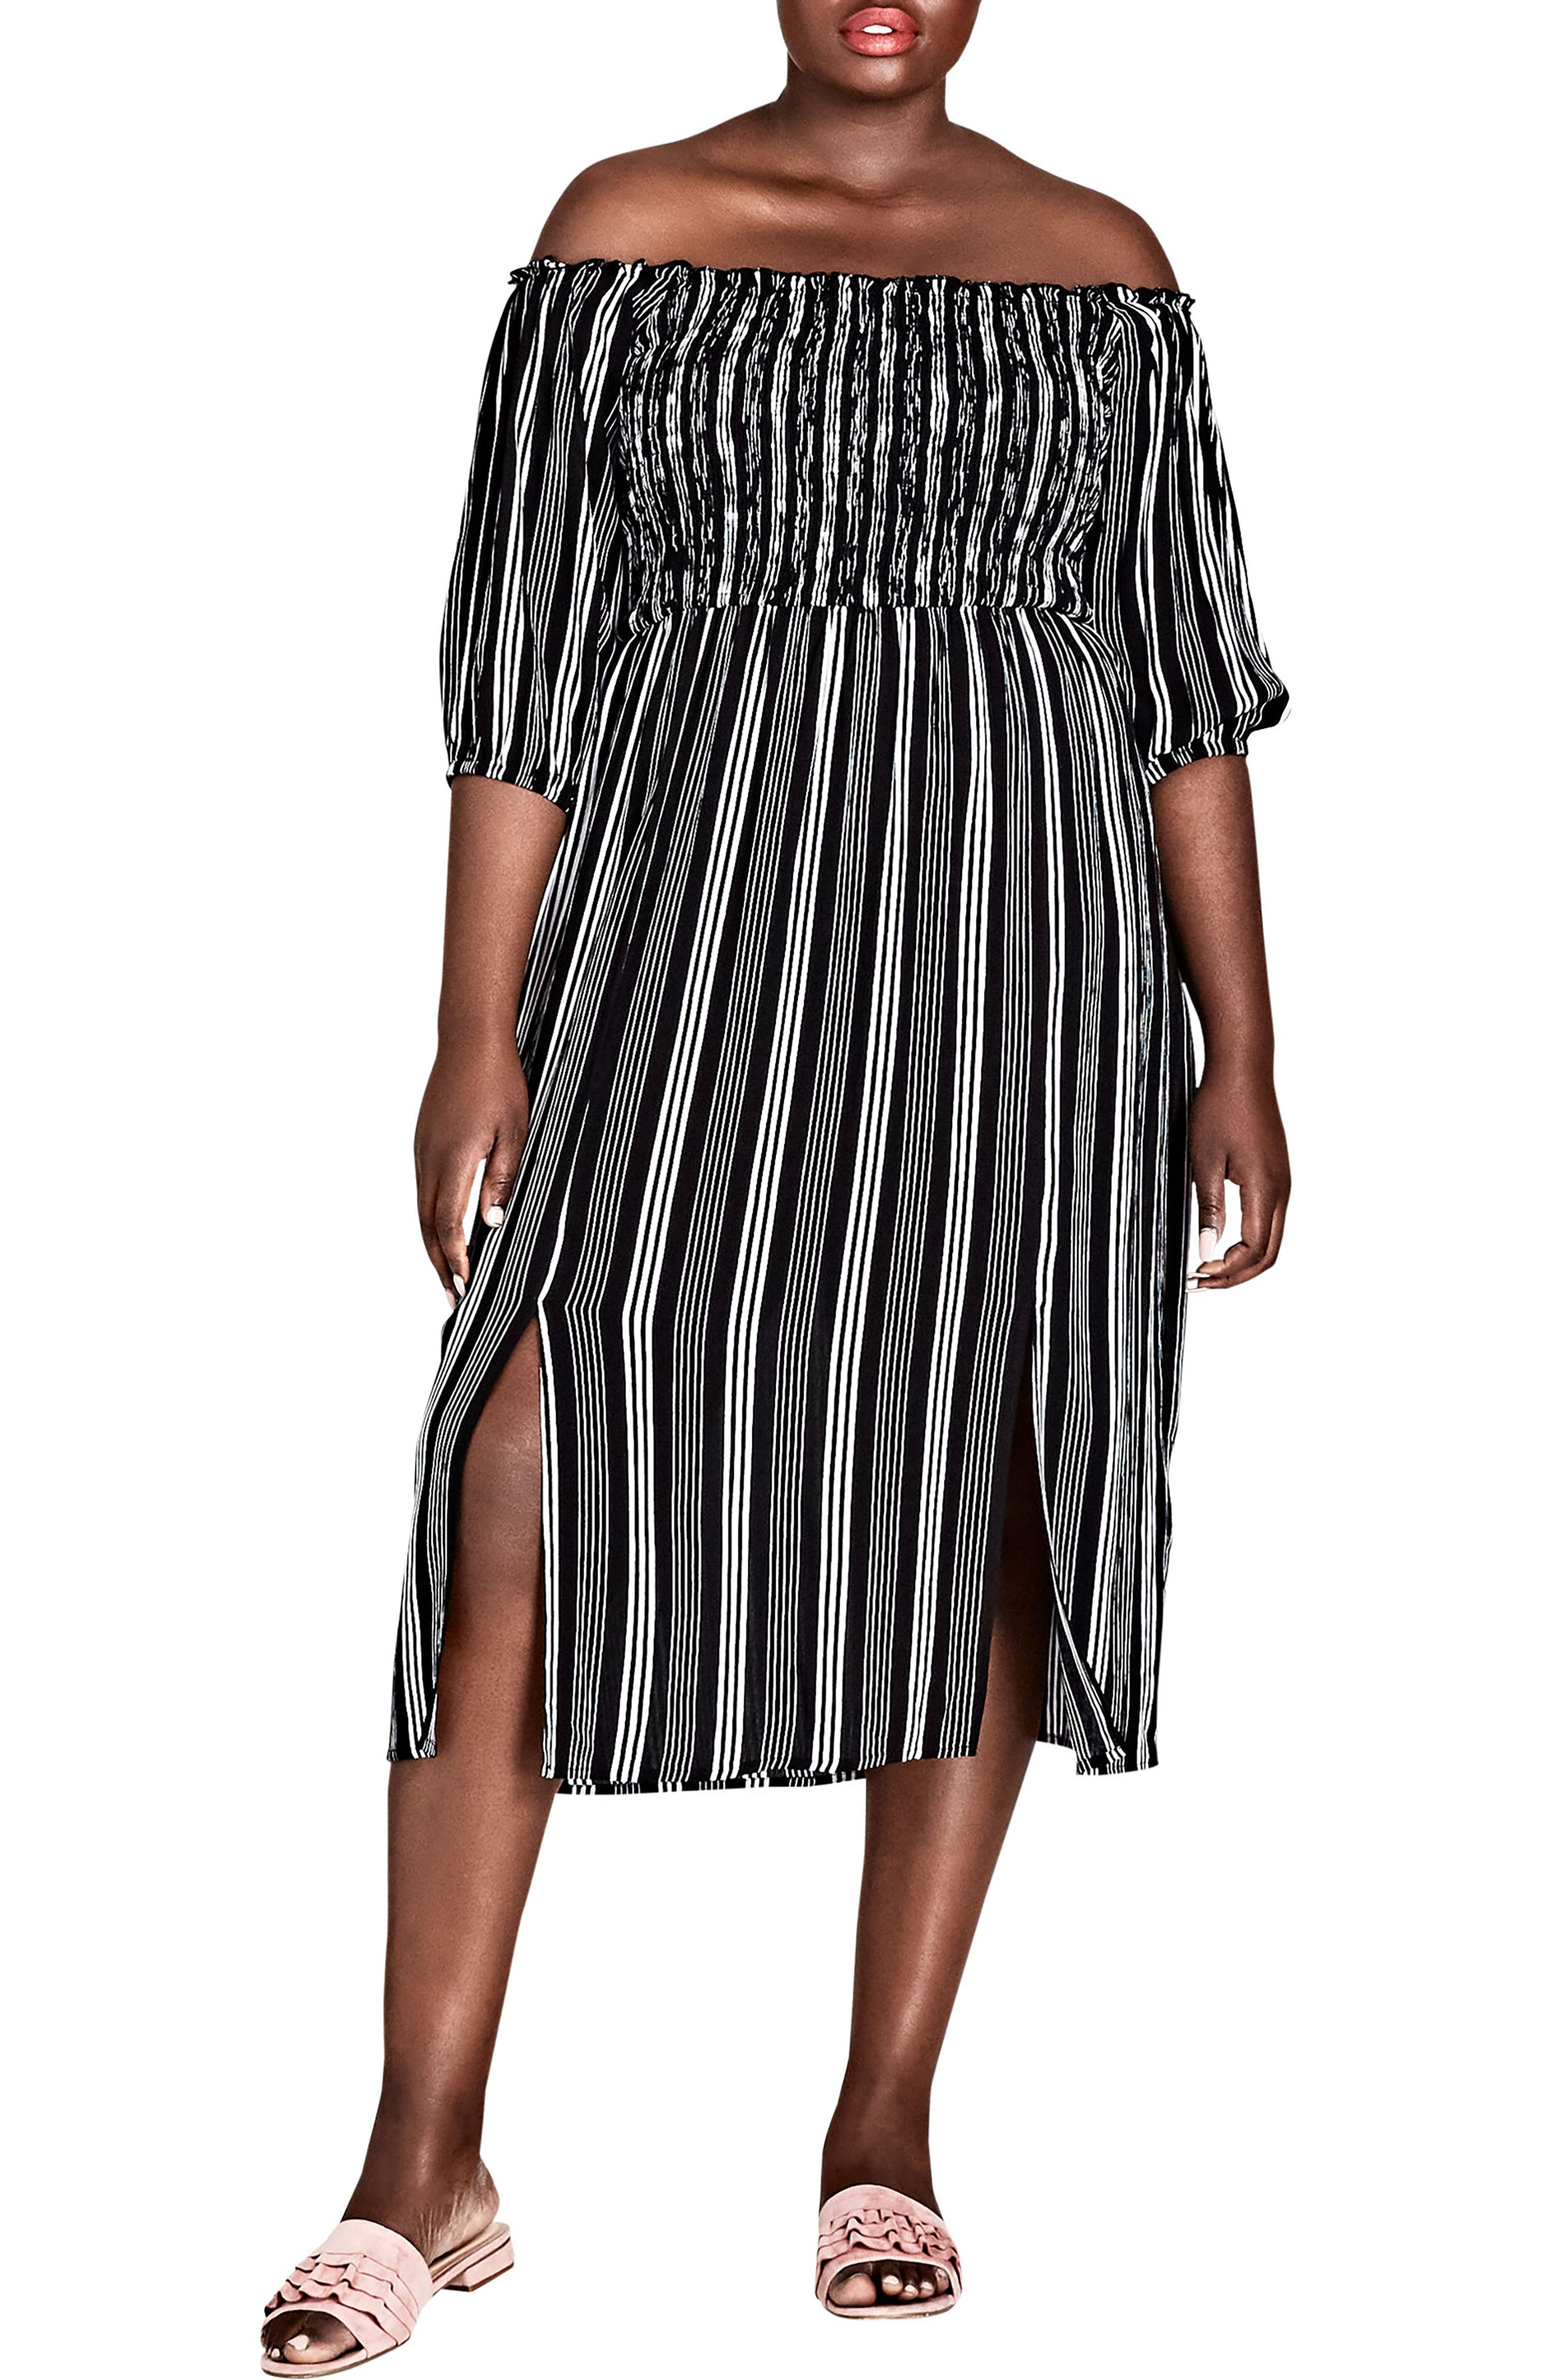 Stripe Play Off the Shoulder Midi Dress,                         Main,                         color, Stripe Play